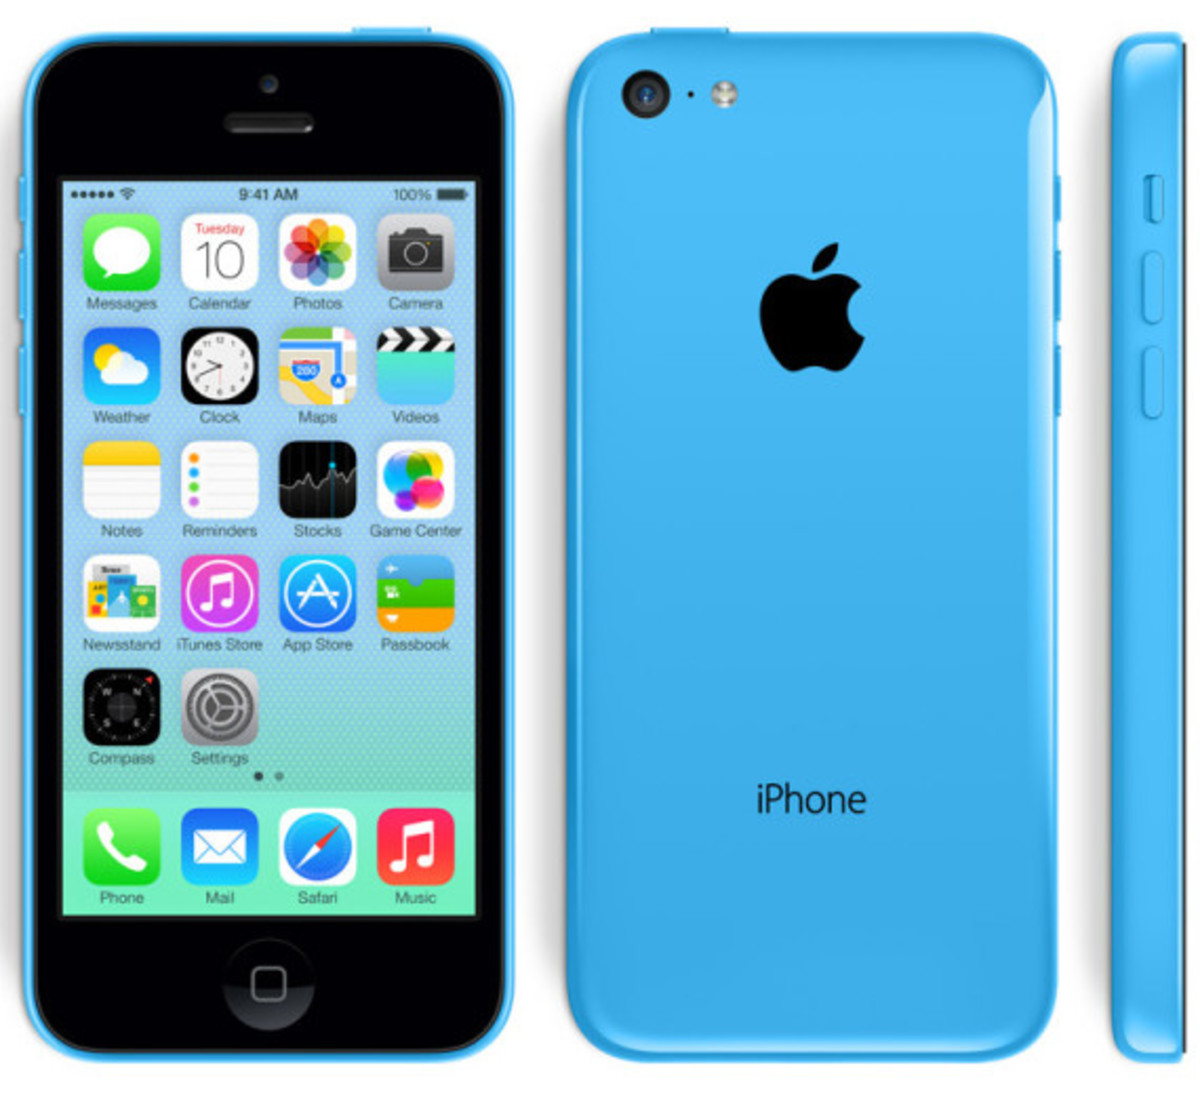 Apple iPhone 5C & 5S | Available Now - 14